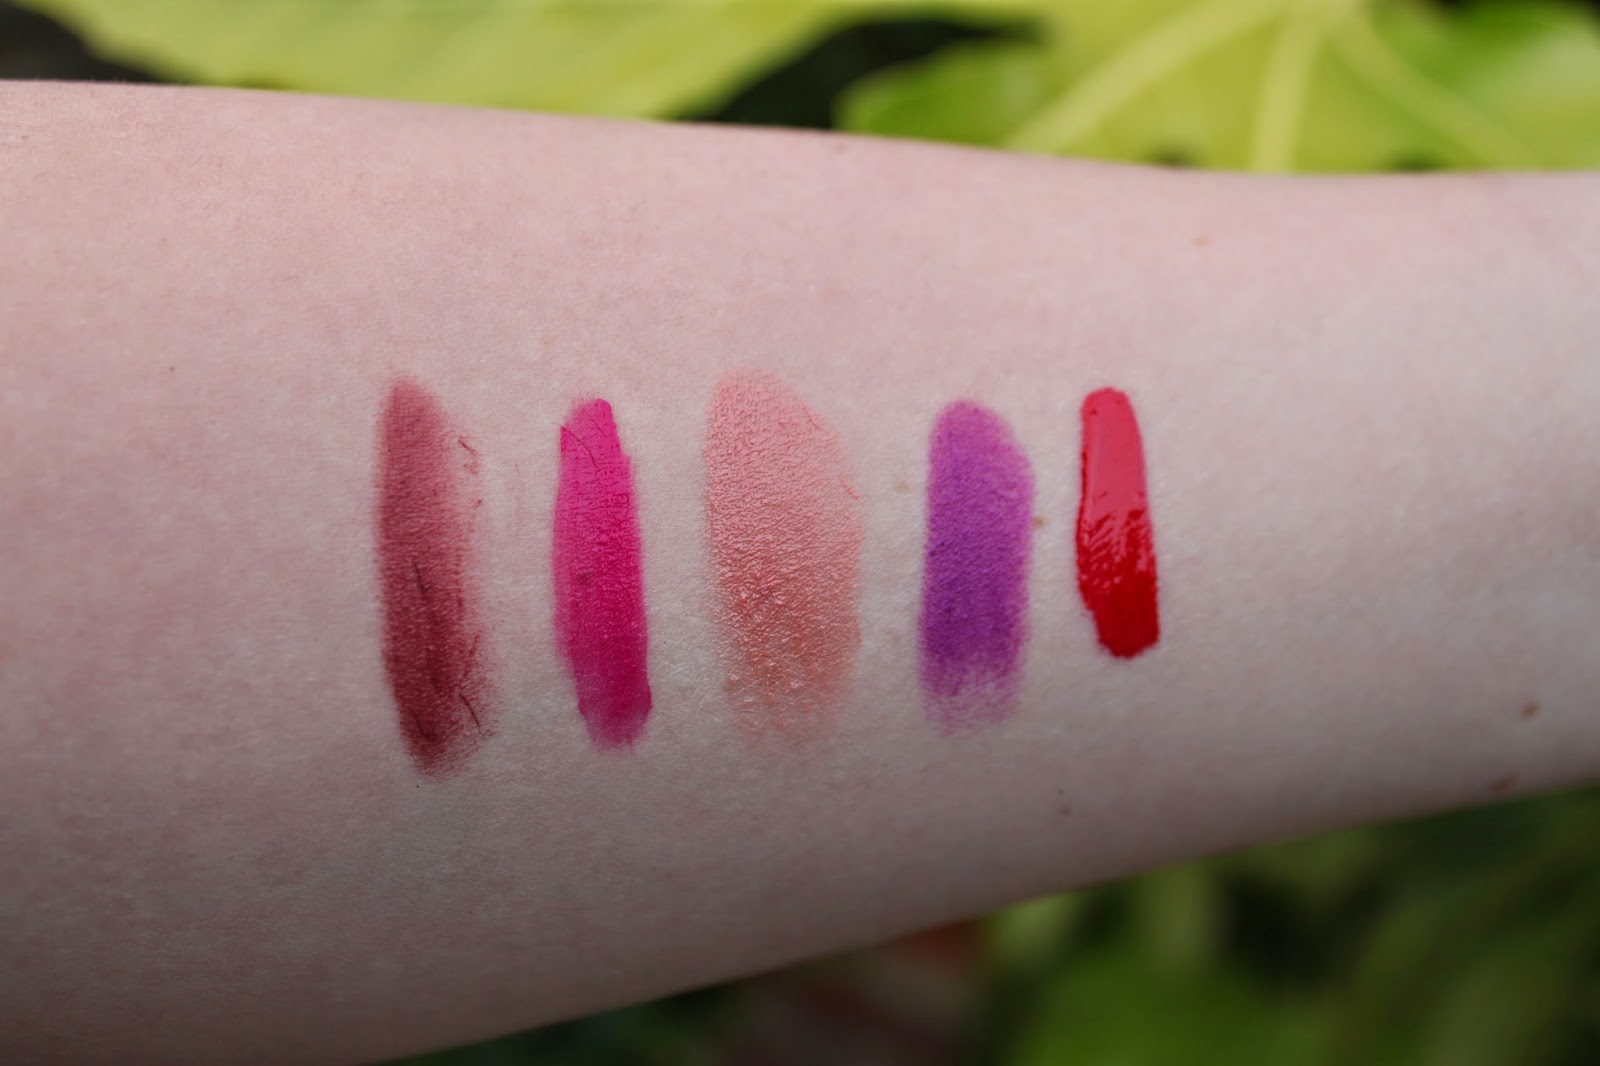 swatches clinique chubby stick intense broadest berry, bourjois rouge edition velvet pink pong, nyx round lipstick pumpkin pie, mac heroine, nyx lip gloss perfect red